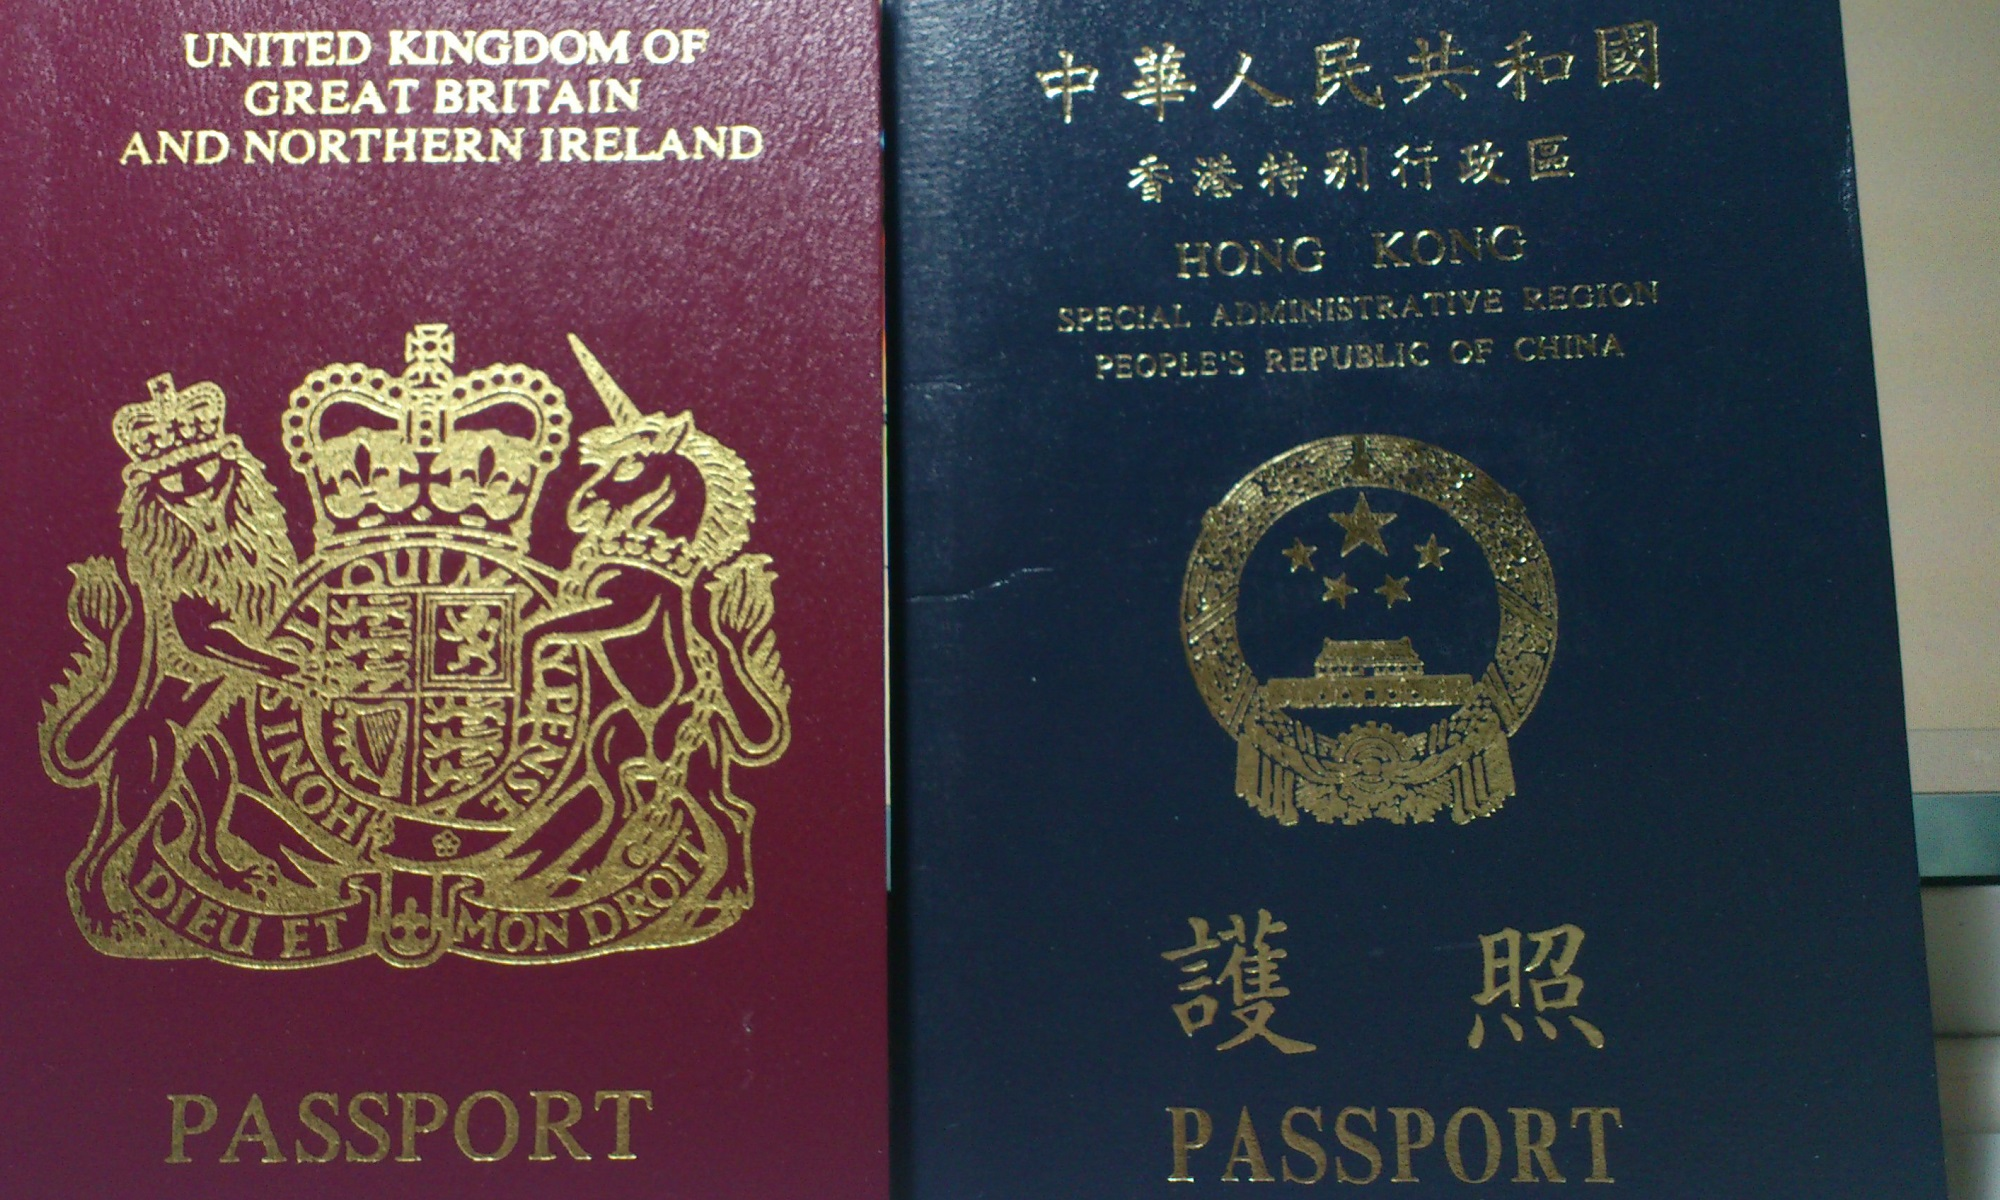 Hong Kong and British passports.